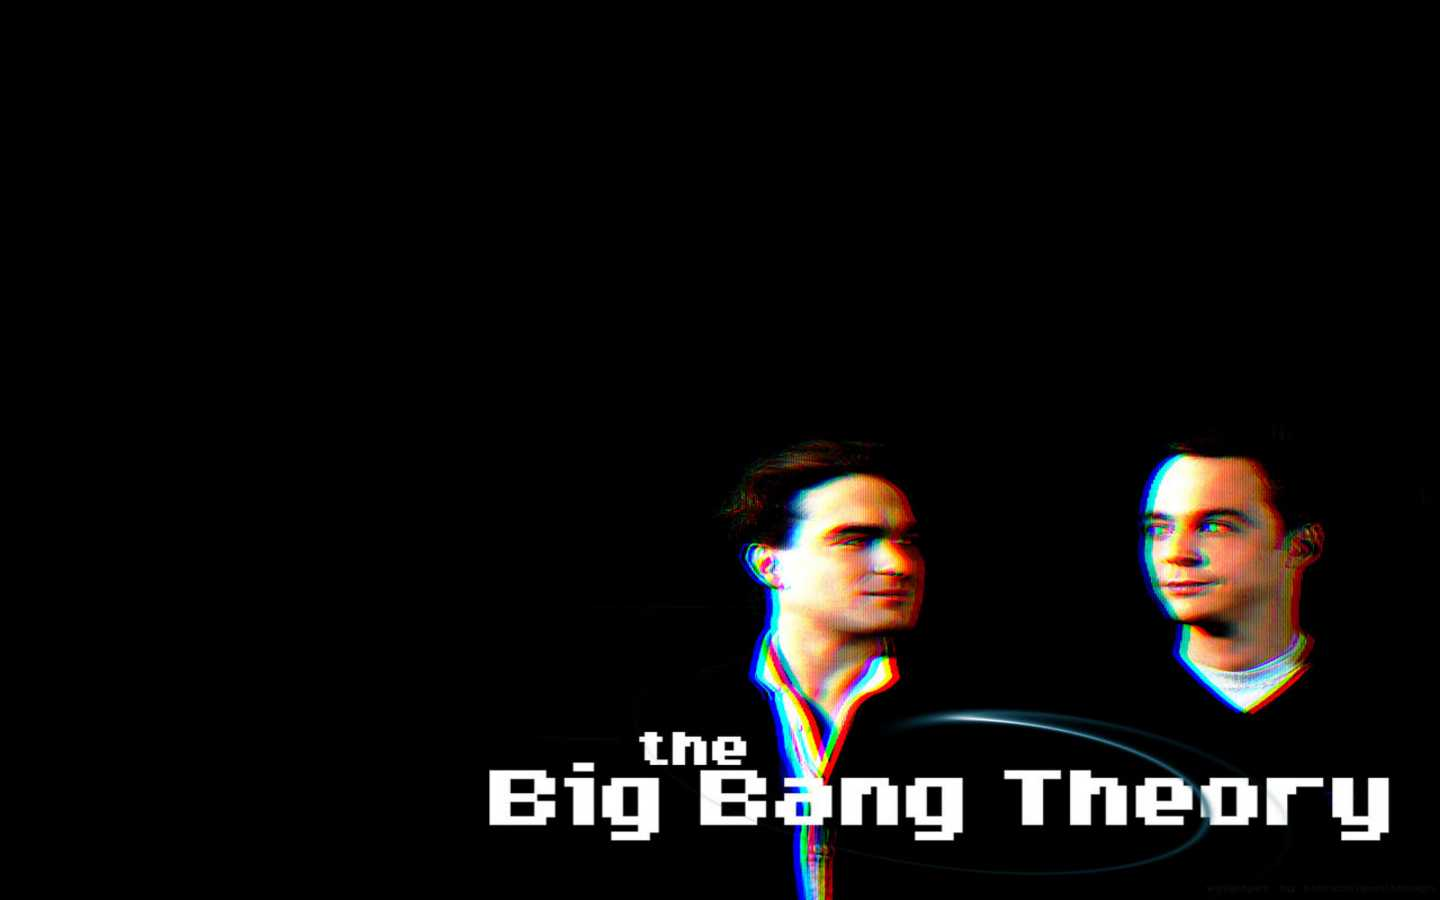 1440x900+Wallpaper+Desktop++The+big+bang+theory++The_Big_Bang_Theory